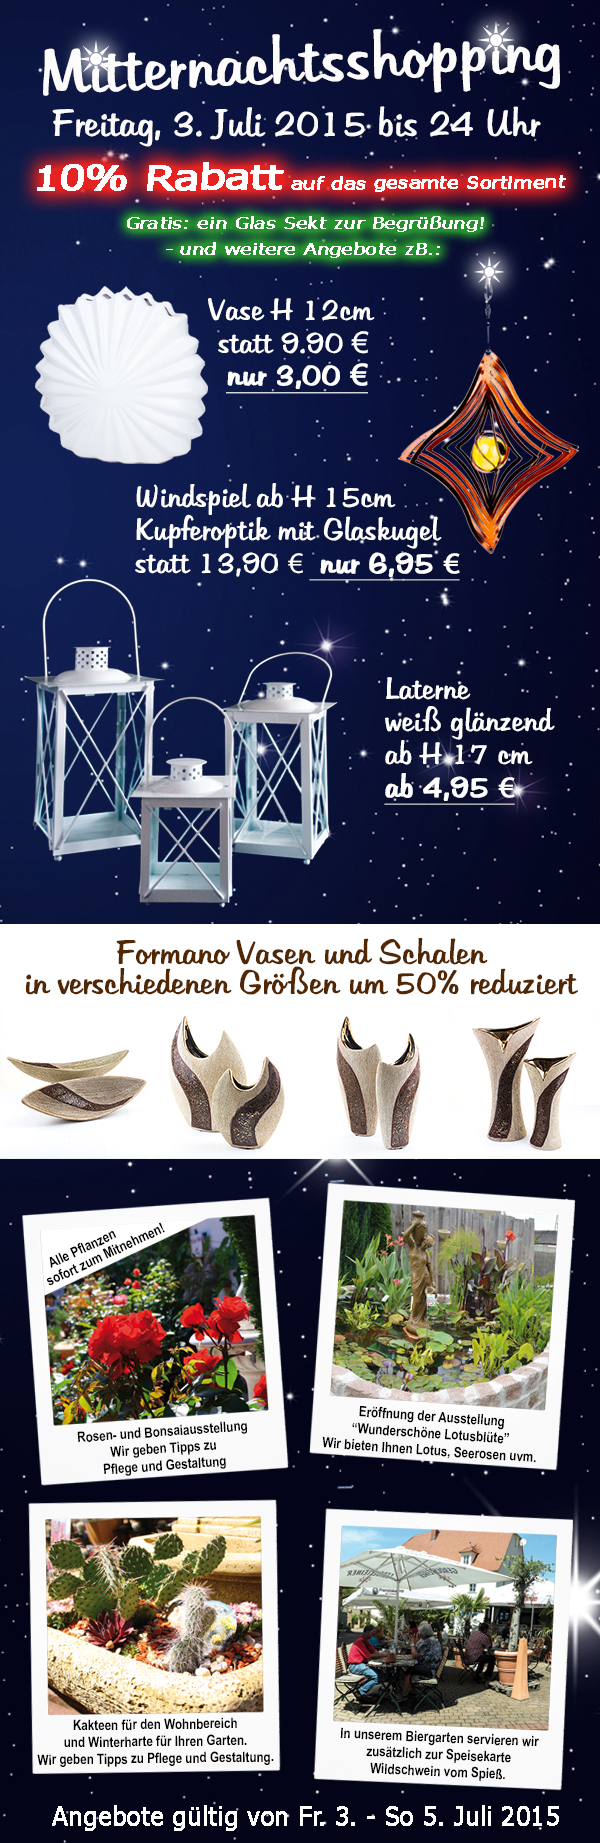 Mitternachtsshopping Newsletter 2015